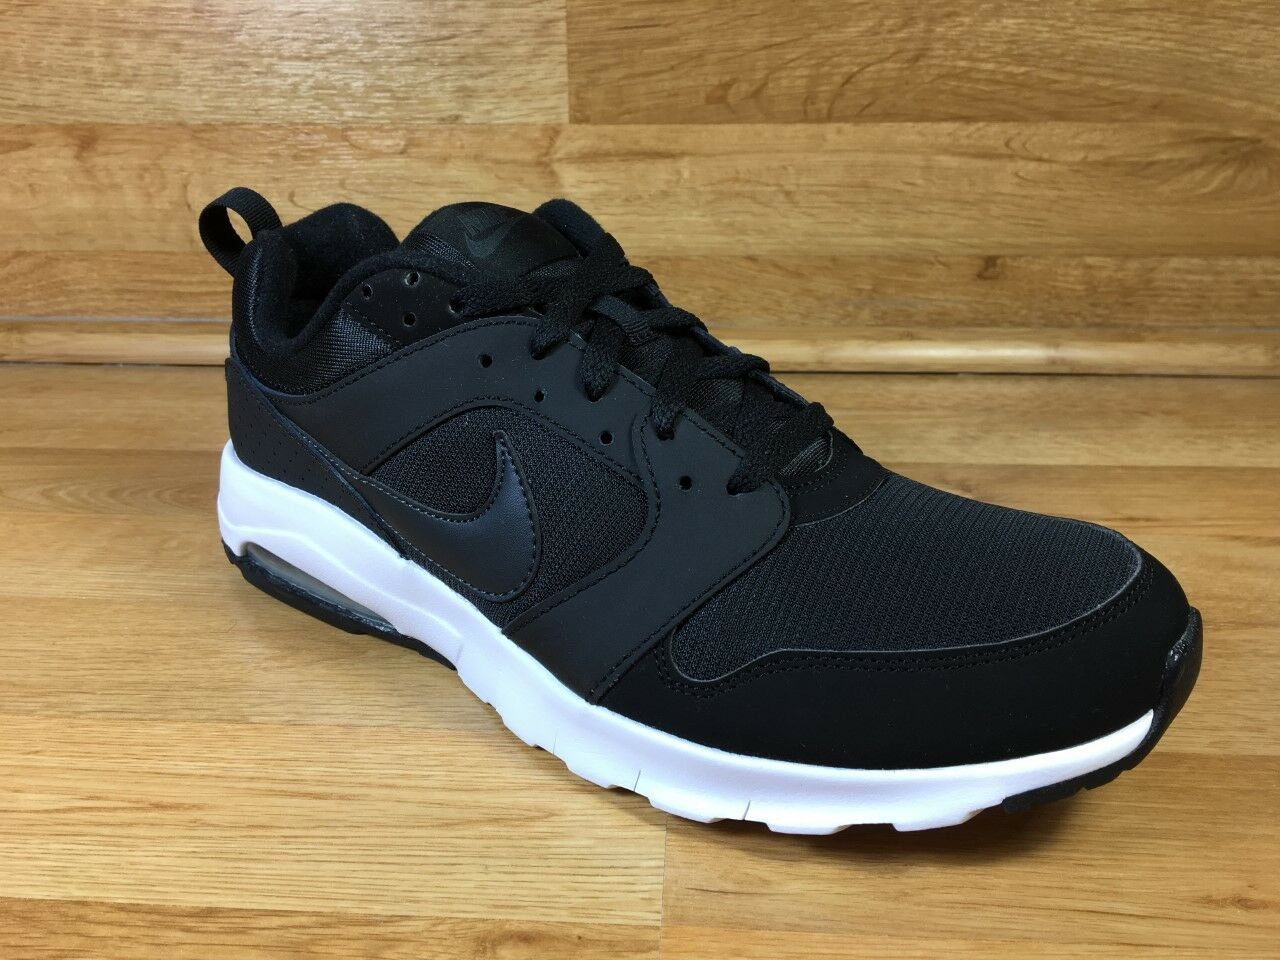 NIKE AIR MAX MOTION / BLACK - ANTHRACITE - WHITE / MEN'S SIZE 10.5